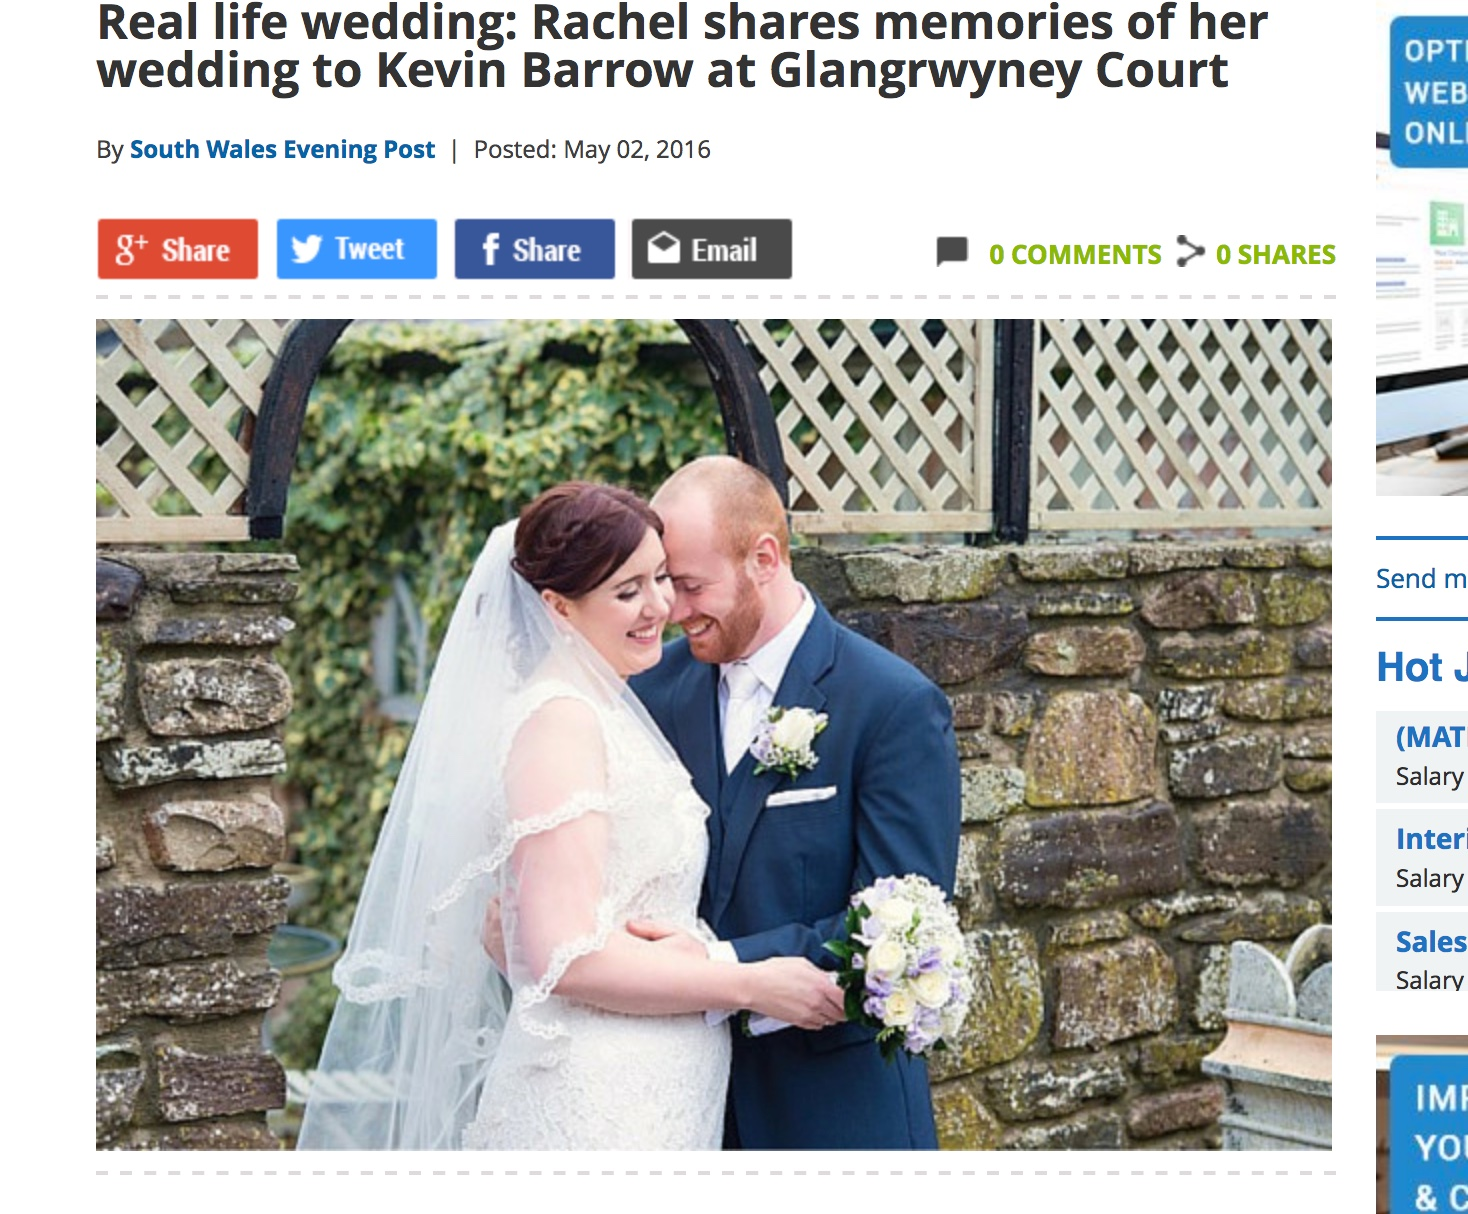 Real Life Wedding of Rachel and Kevin